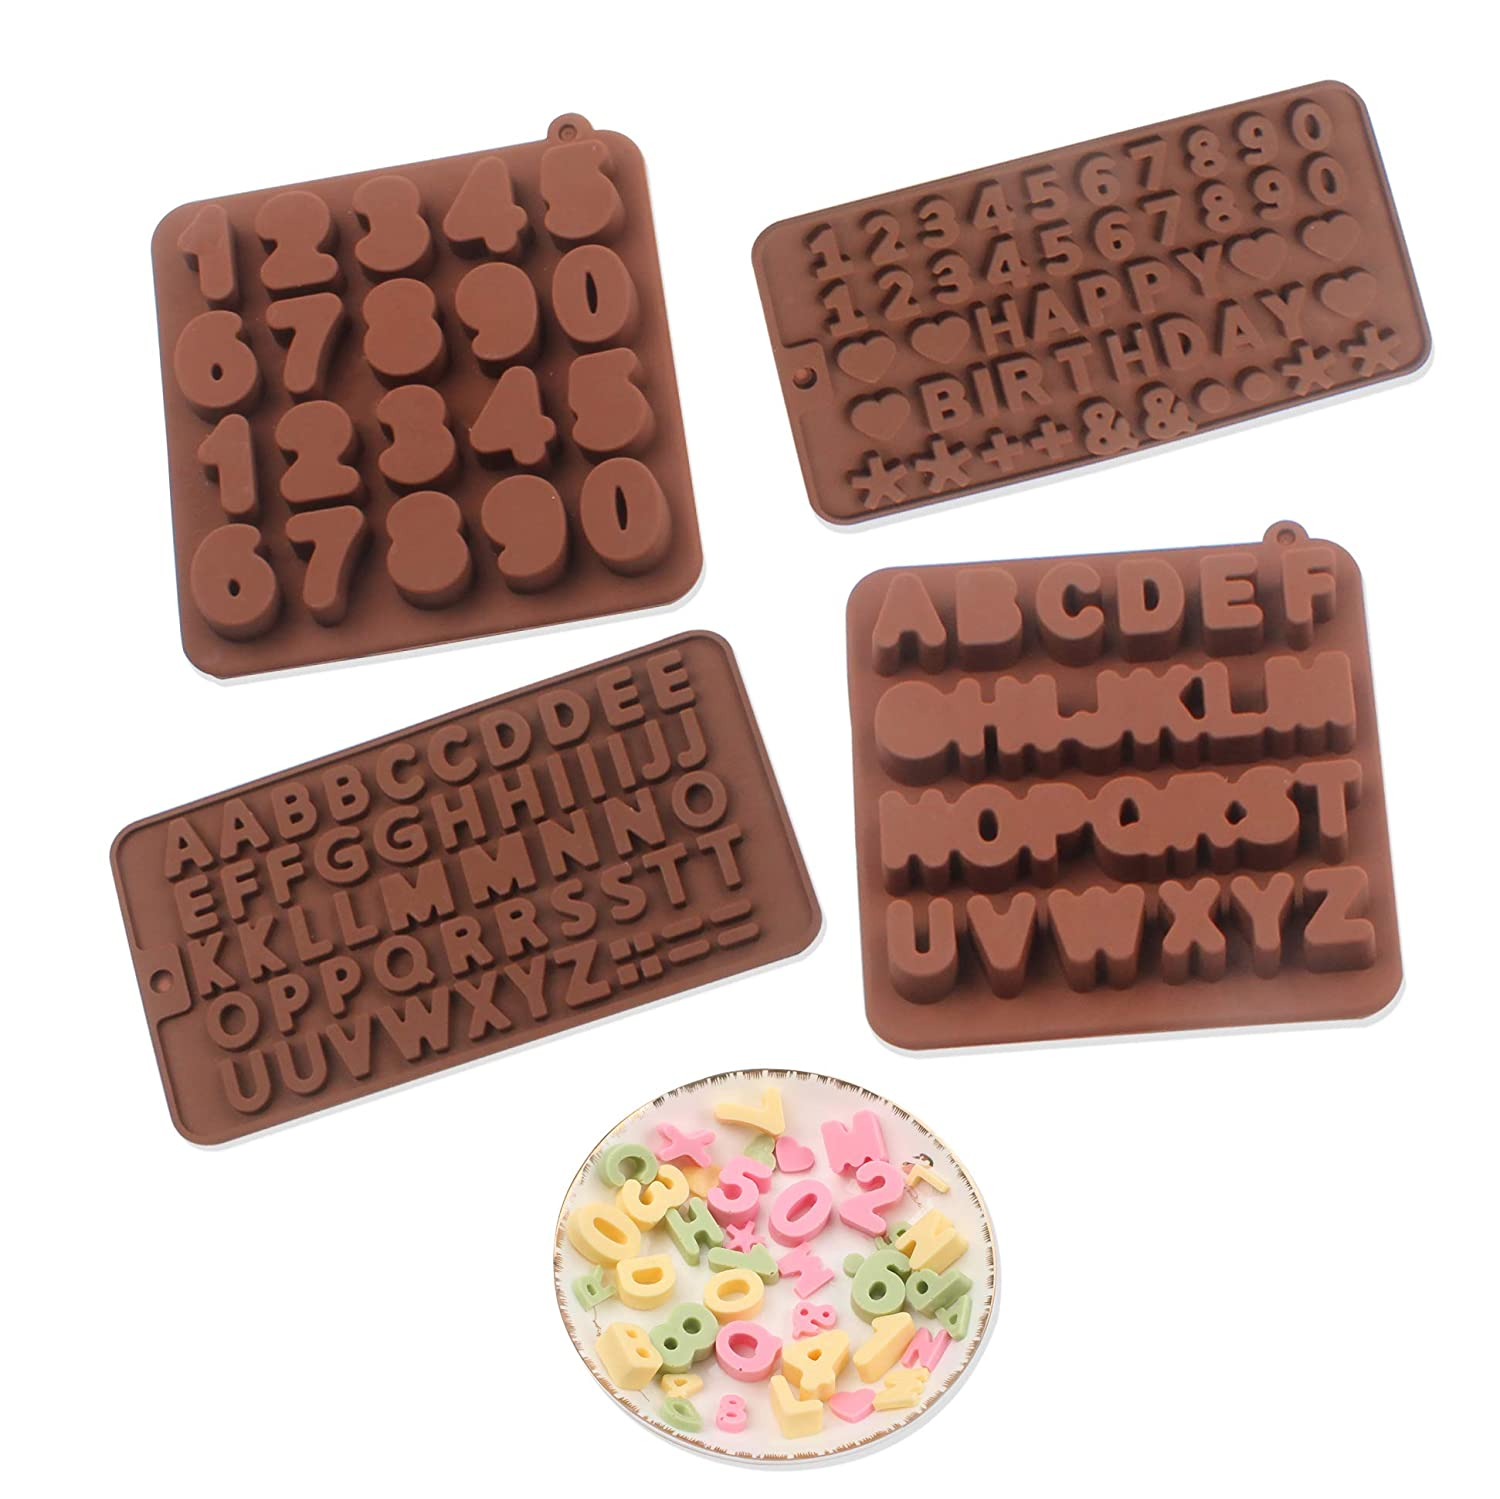 BAKER DEPOT Silicone Chocolate Mold different Letters number Fondant Cake Decorating Molds Happy Birthday Cake Baking DIY Tool Candy Biscuit Mould set of 4